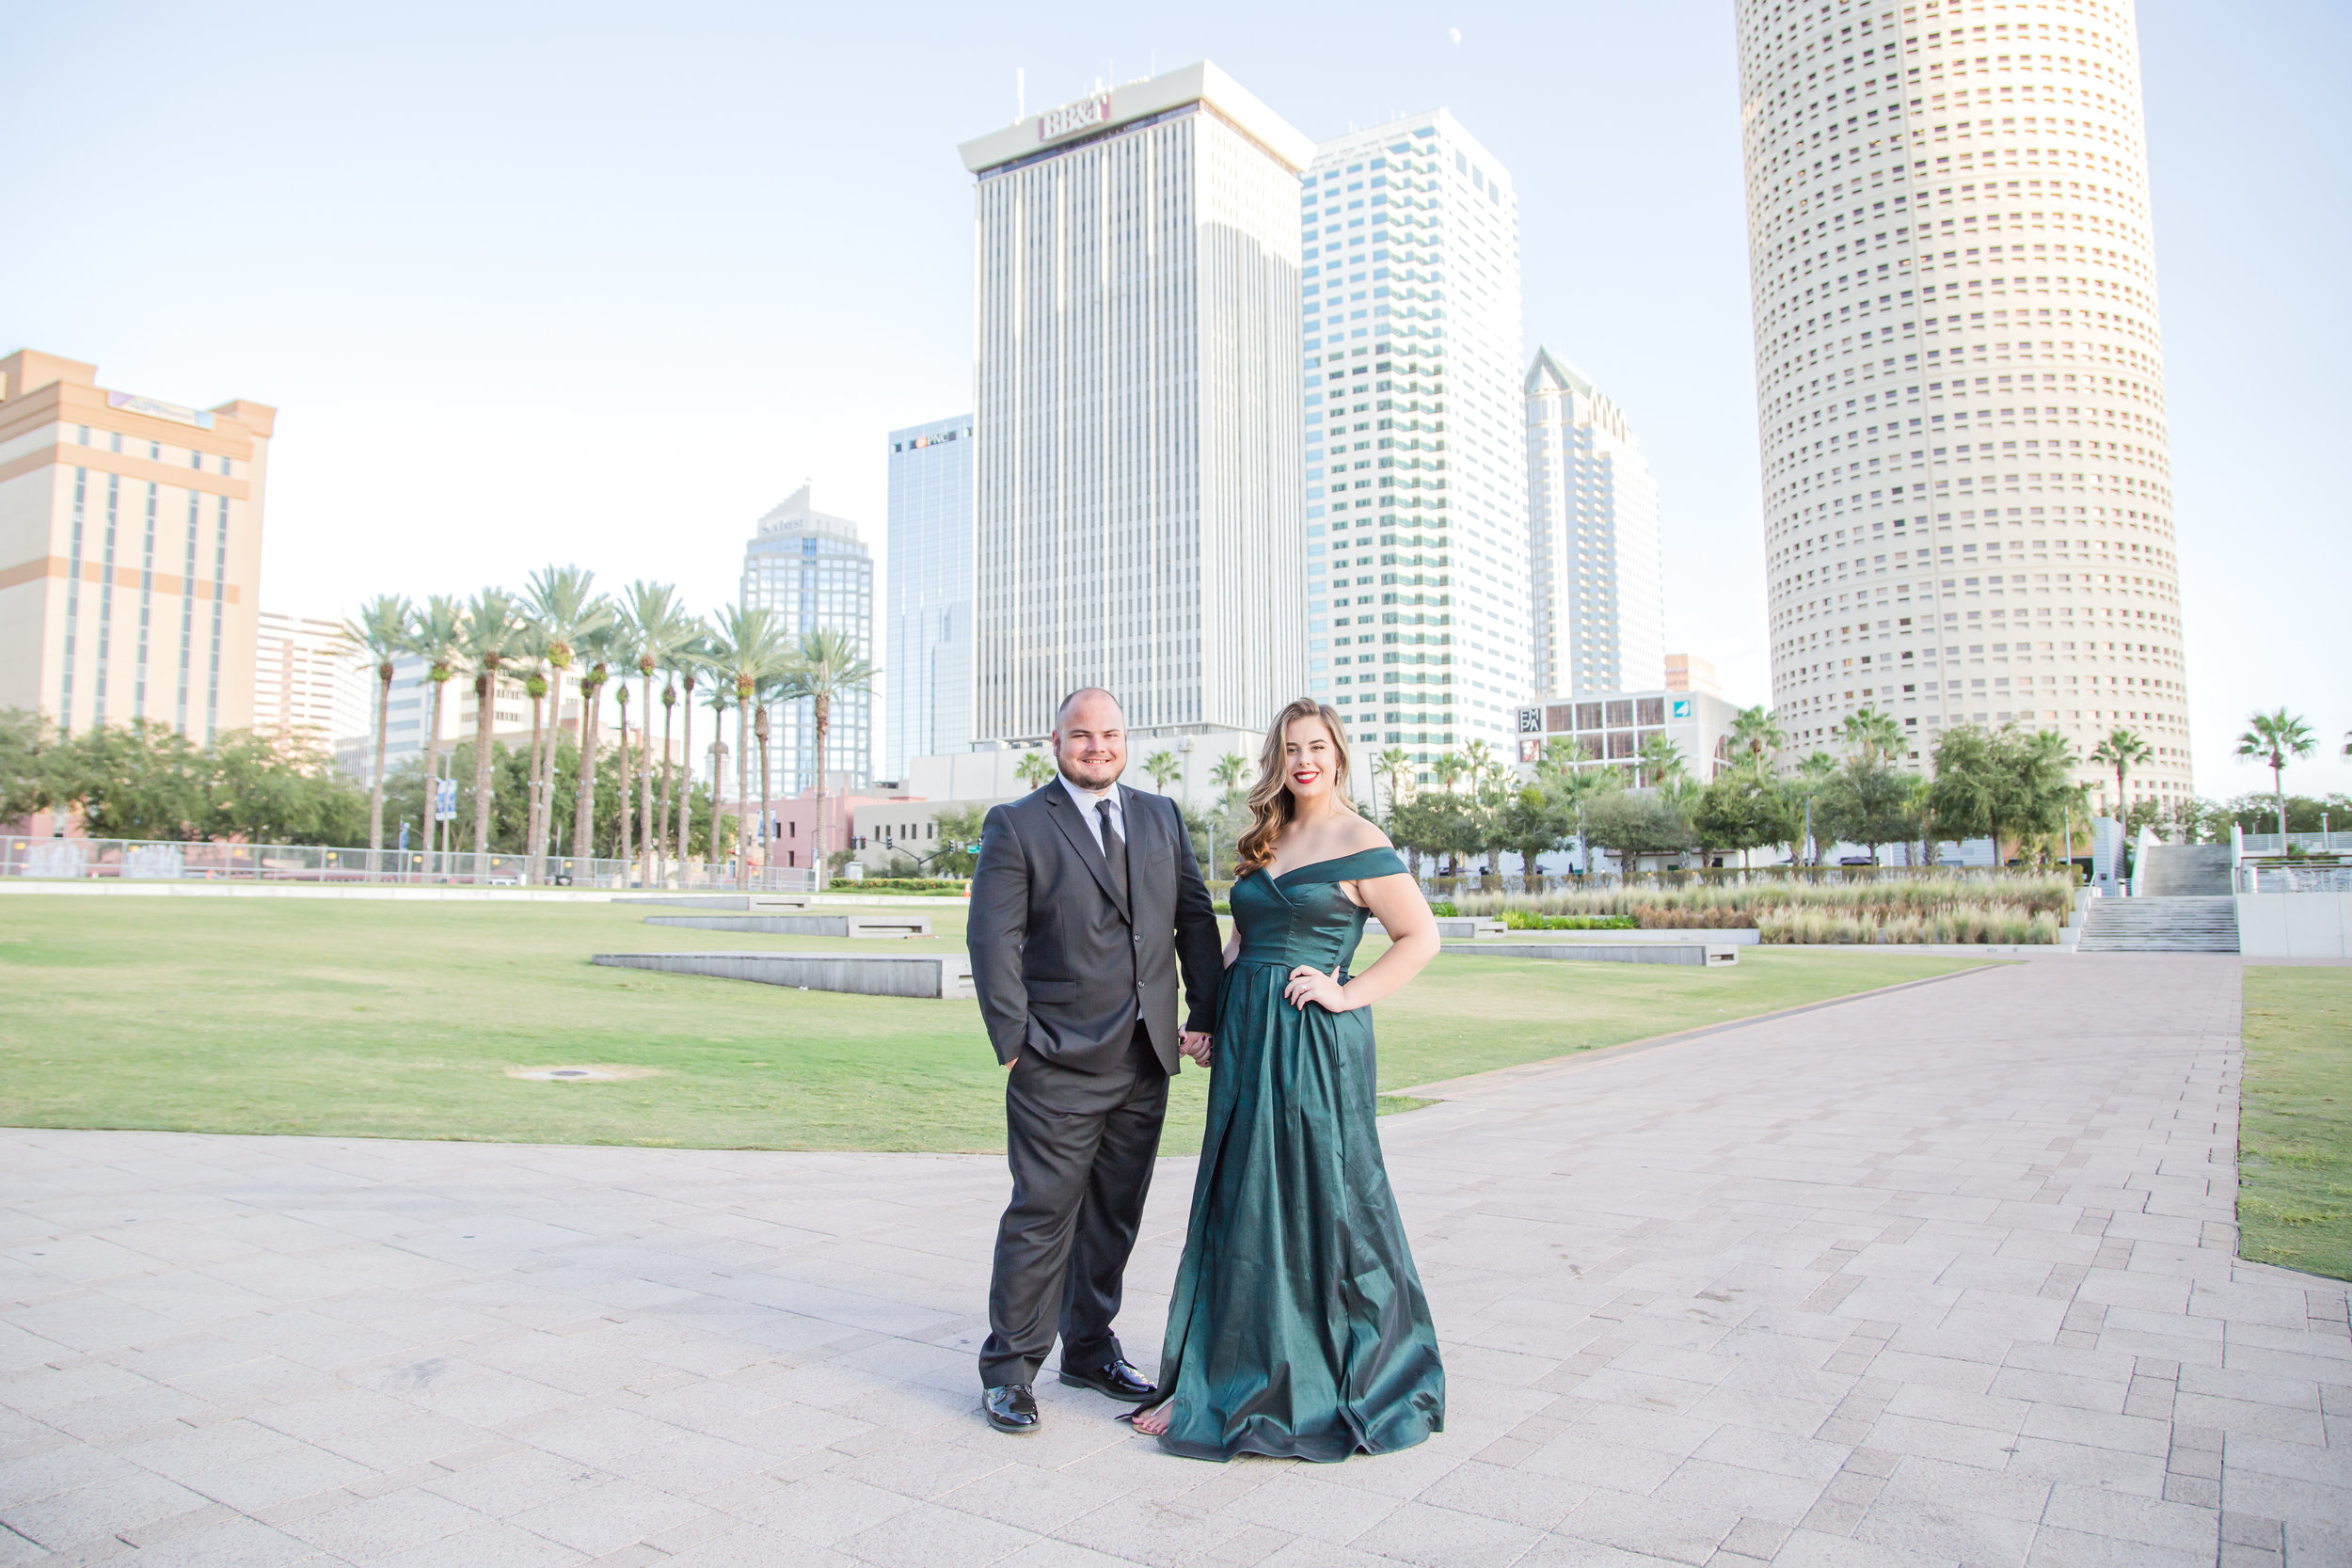 curtis-hixon-park-tampa-florida-engagement-session-90.jpg